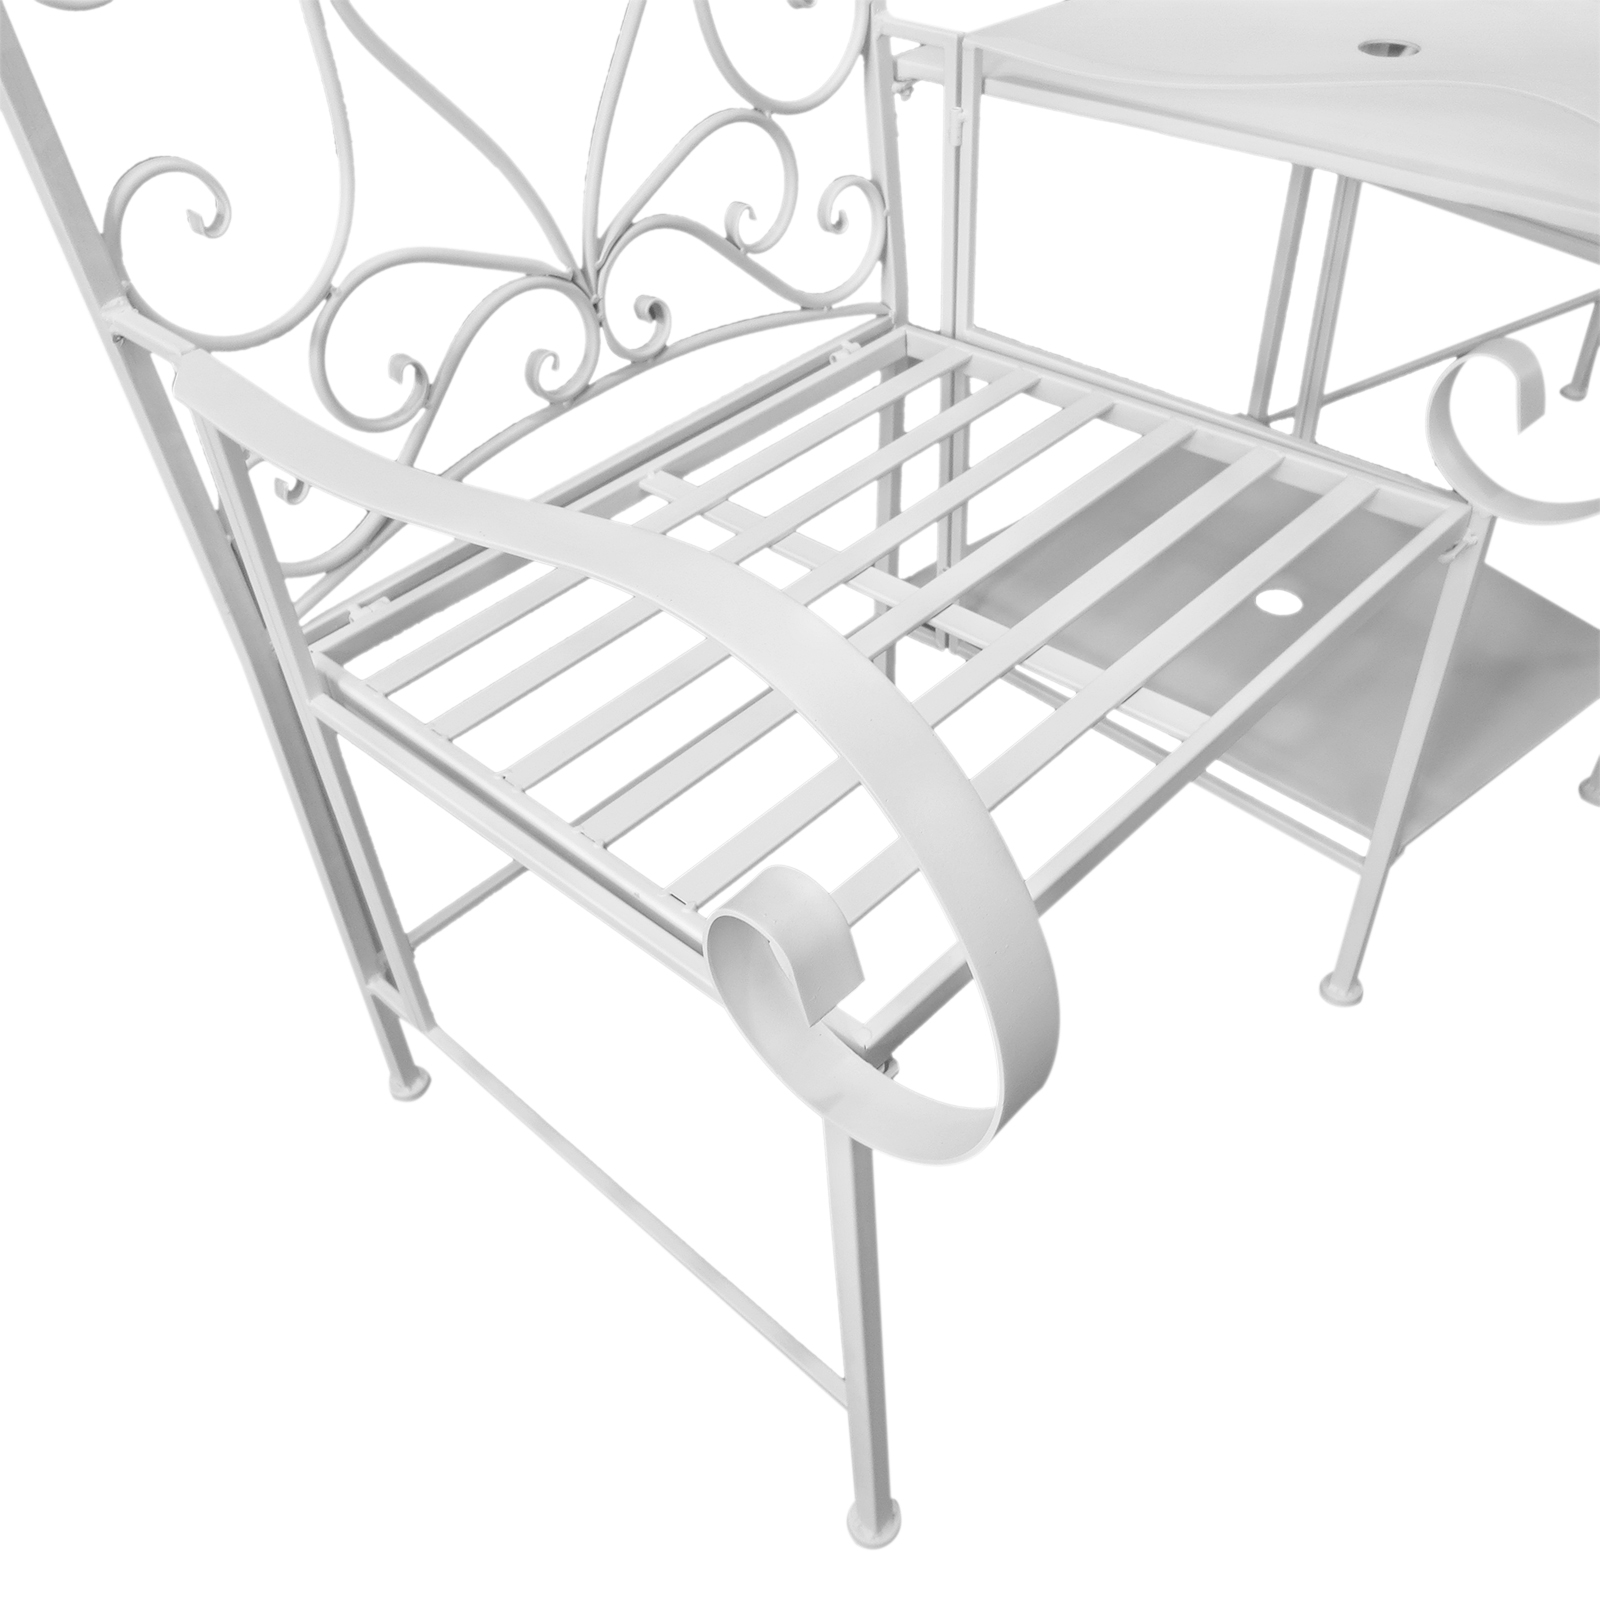 Metal Chair Outdoor Garden Bench Middle Small Table High